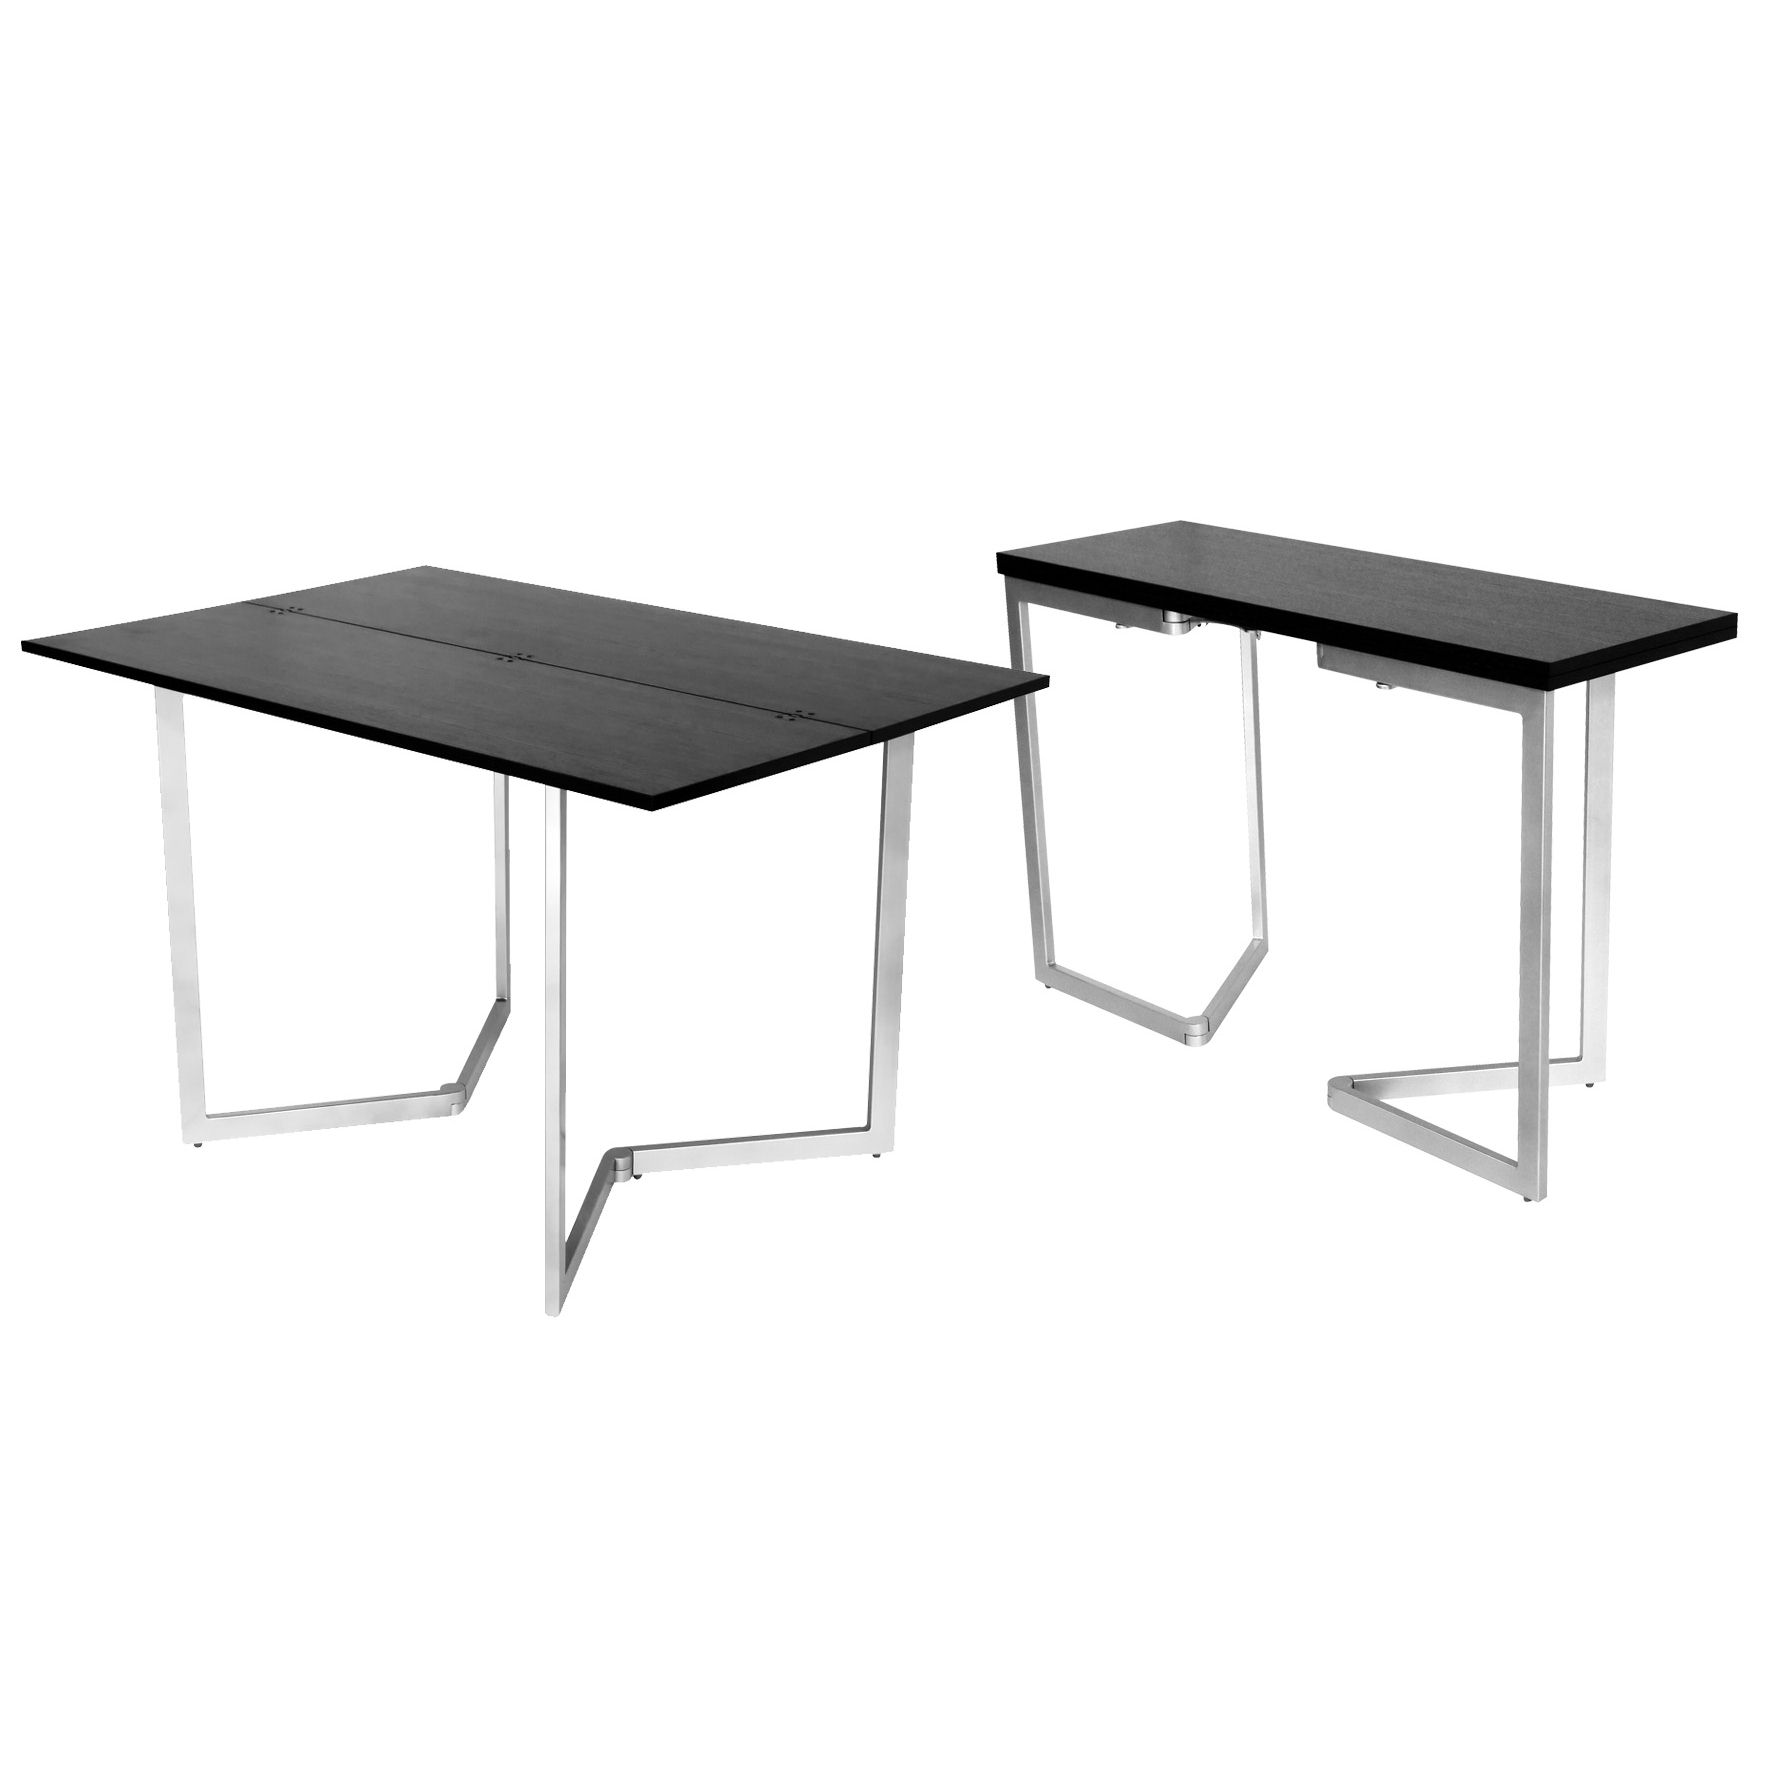 Deco in paris table console extensible wenge talia for Table extensible en largeur